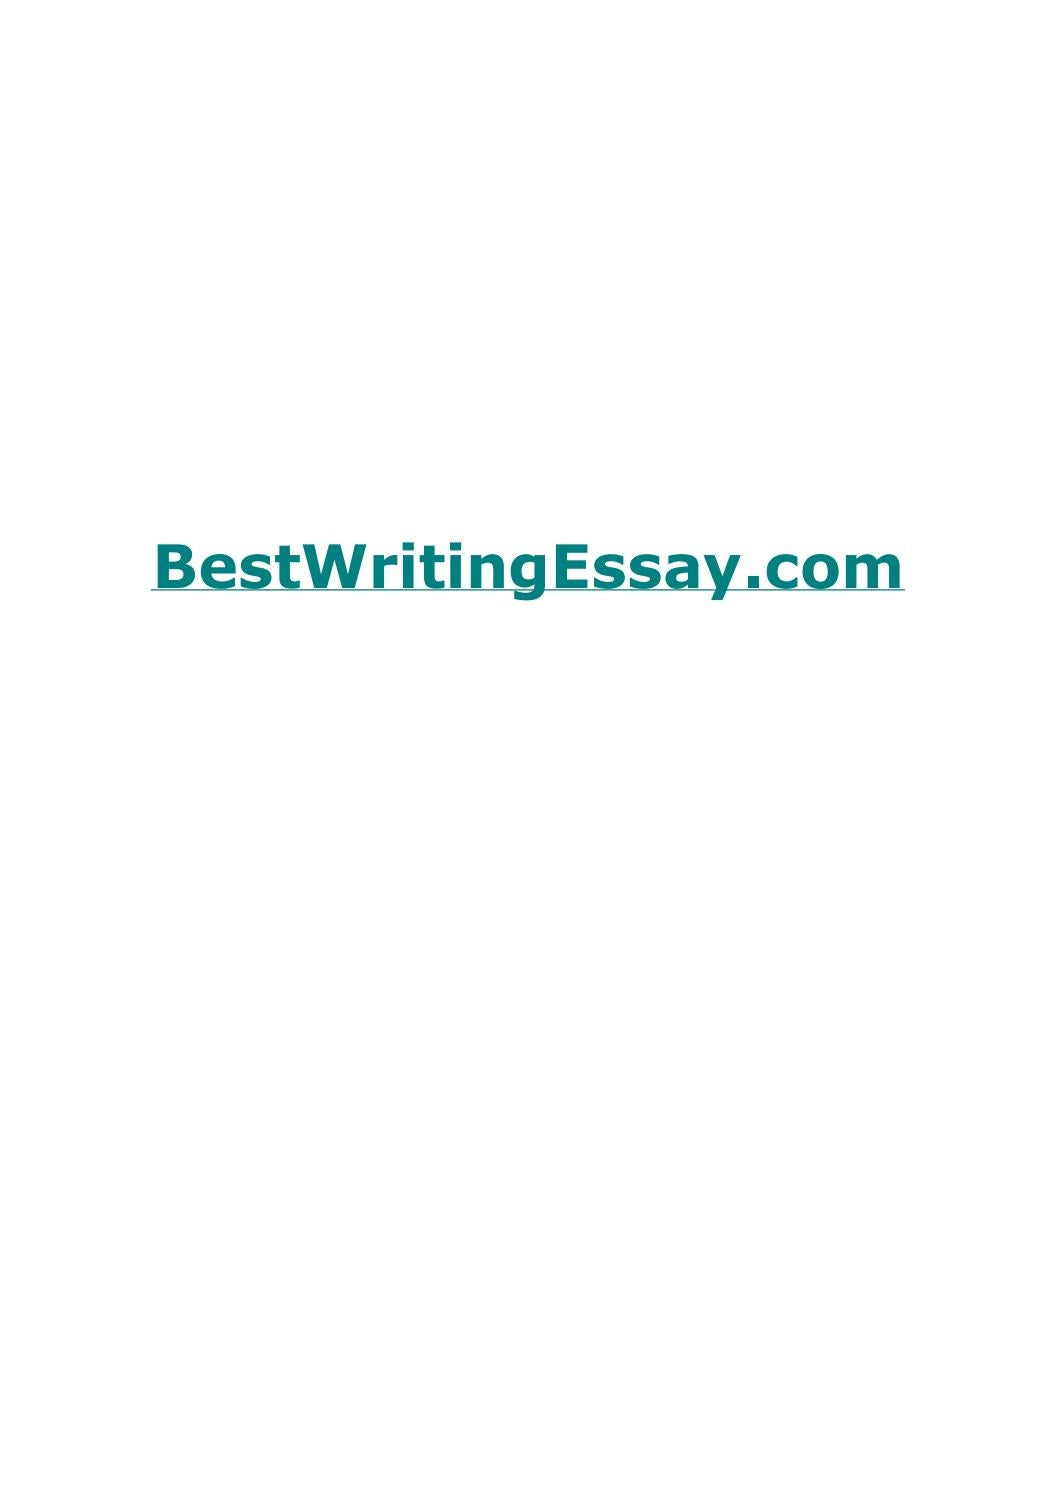 Morality Essay Topics  Oliver Twist Essay Questions also Essay Of Deforestation Top  College Essay Topics By Chrisygcsb  Issuu Pro Life Argument Essay